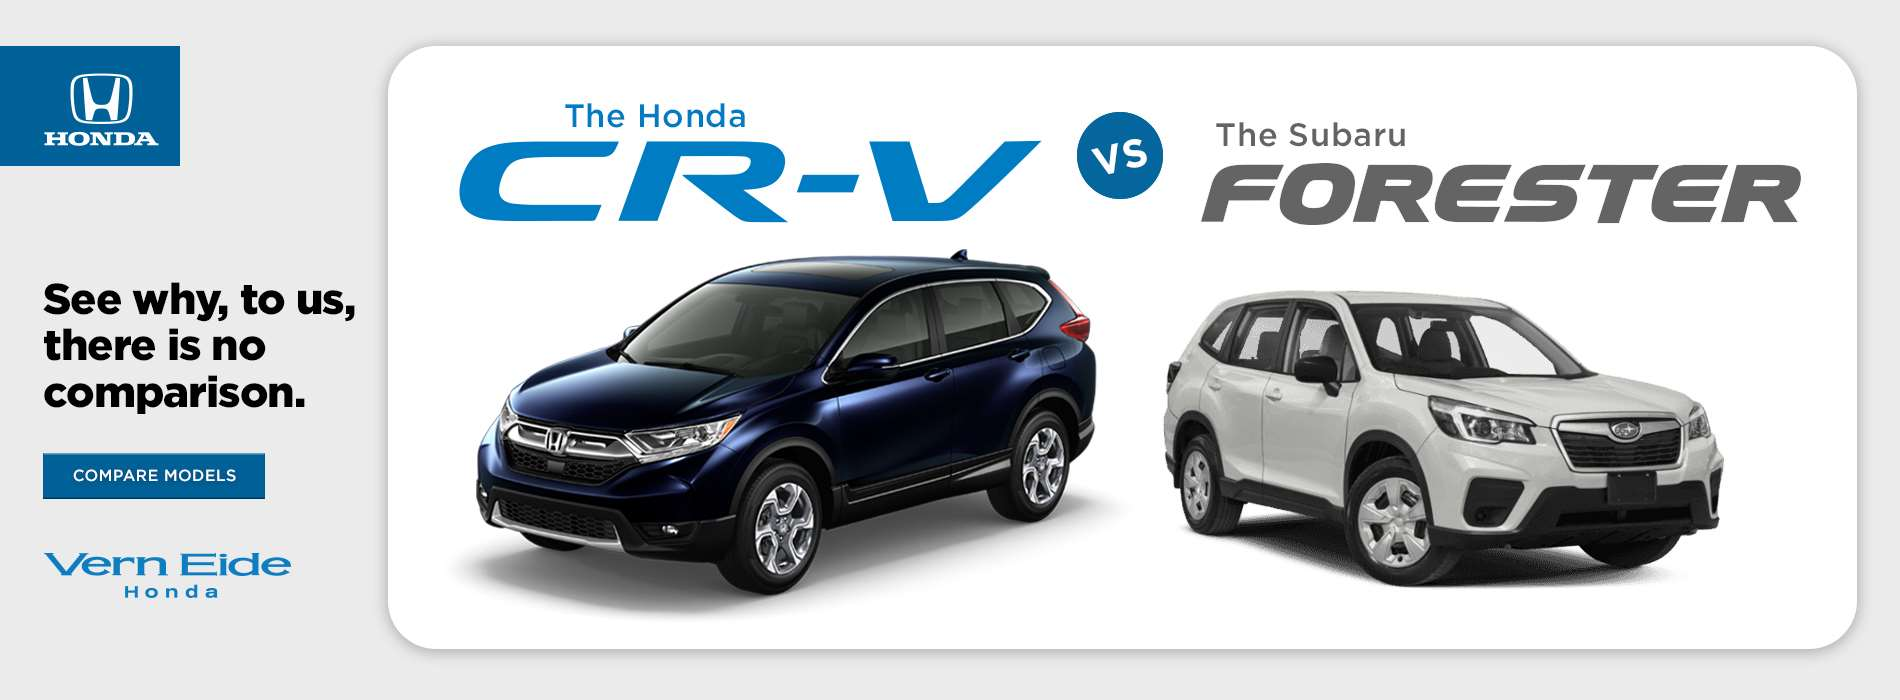 Honda CRV vs Forester